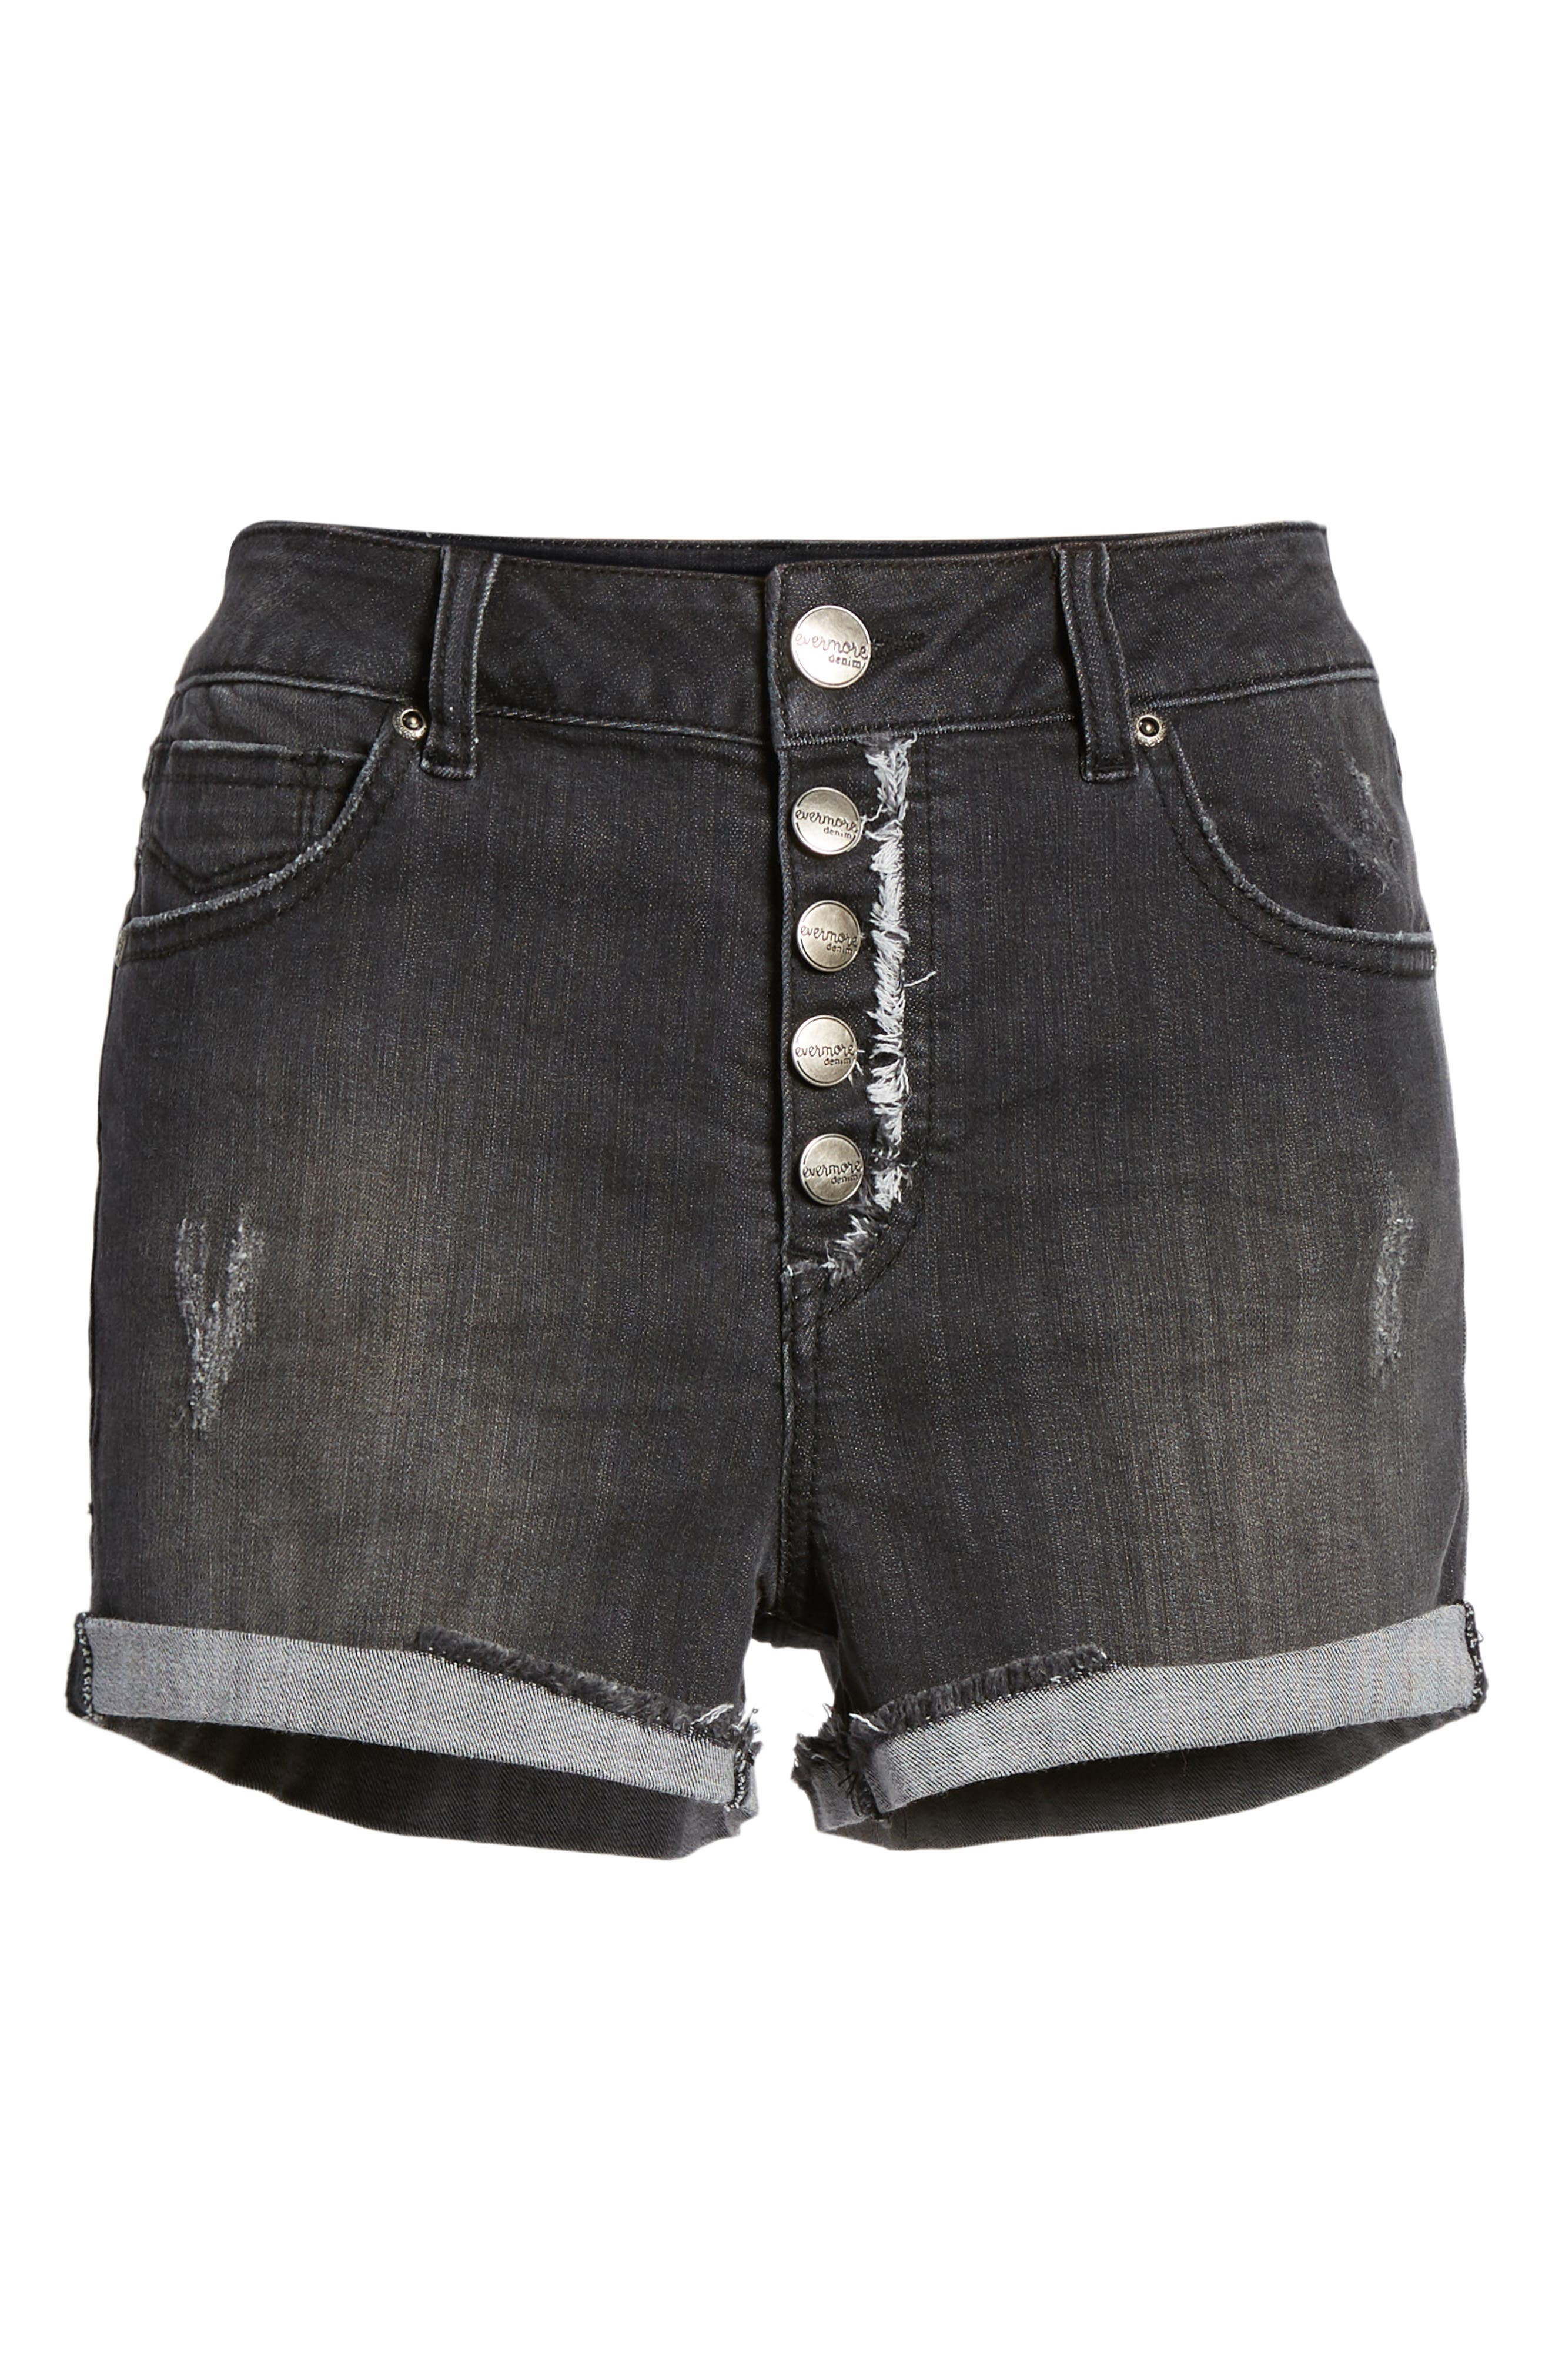 Cuffed Button Fly Denim Shorts,                             Alternate thumbnail 7, color,                             Bentley